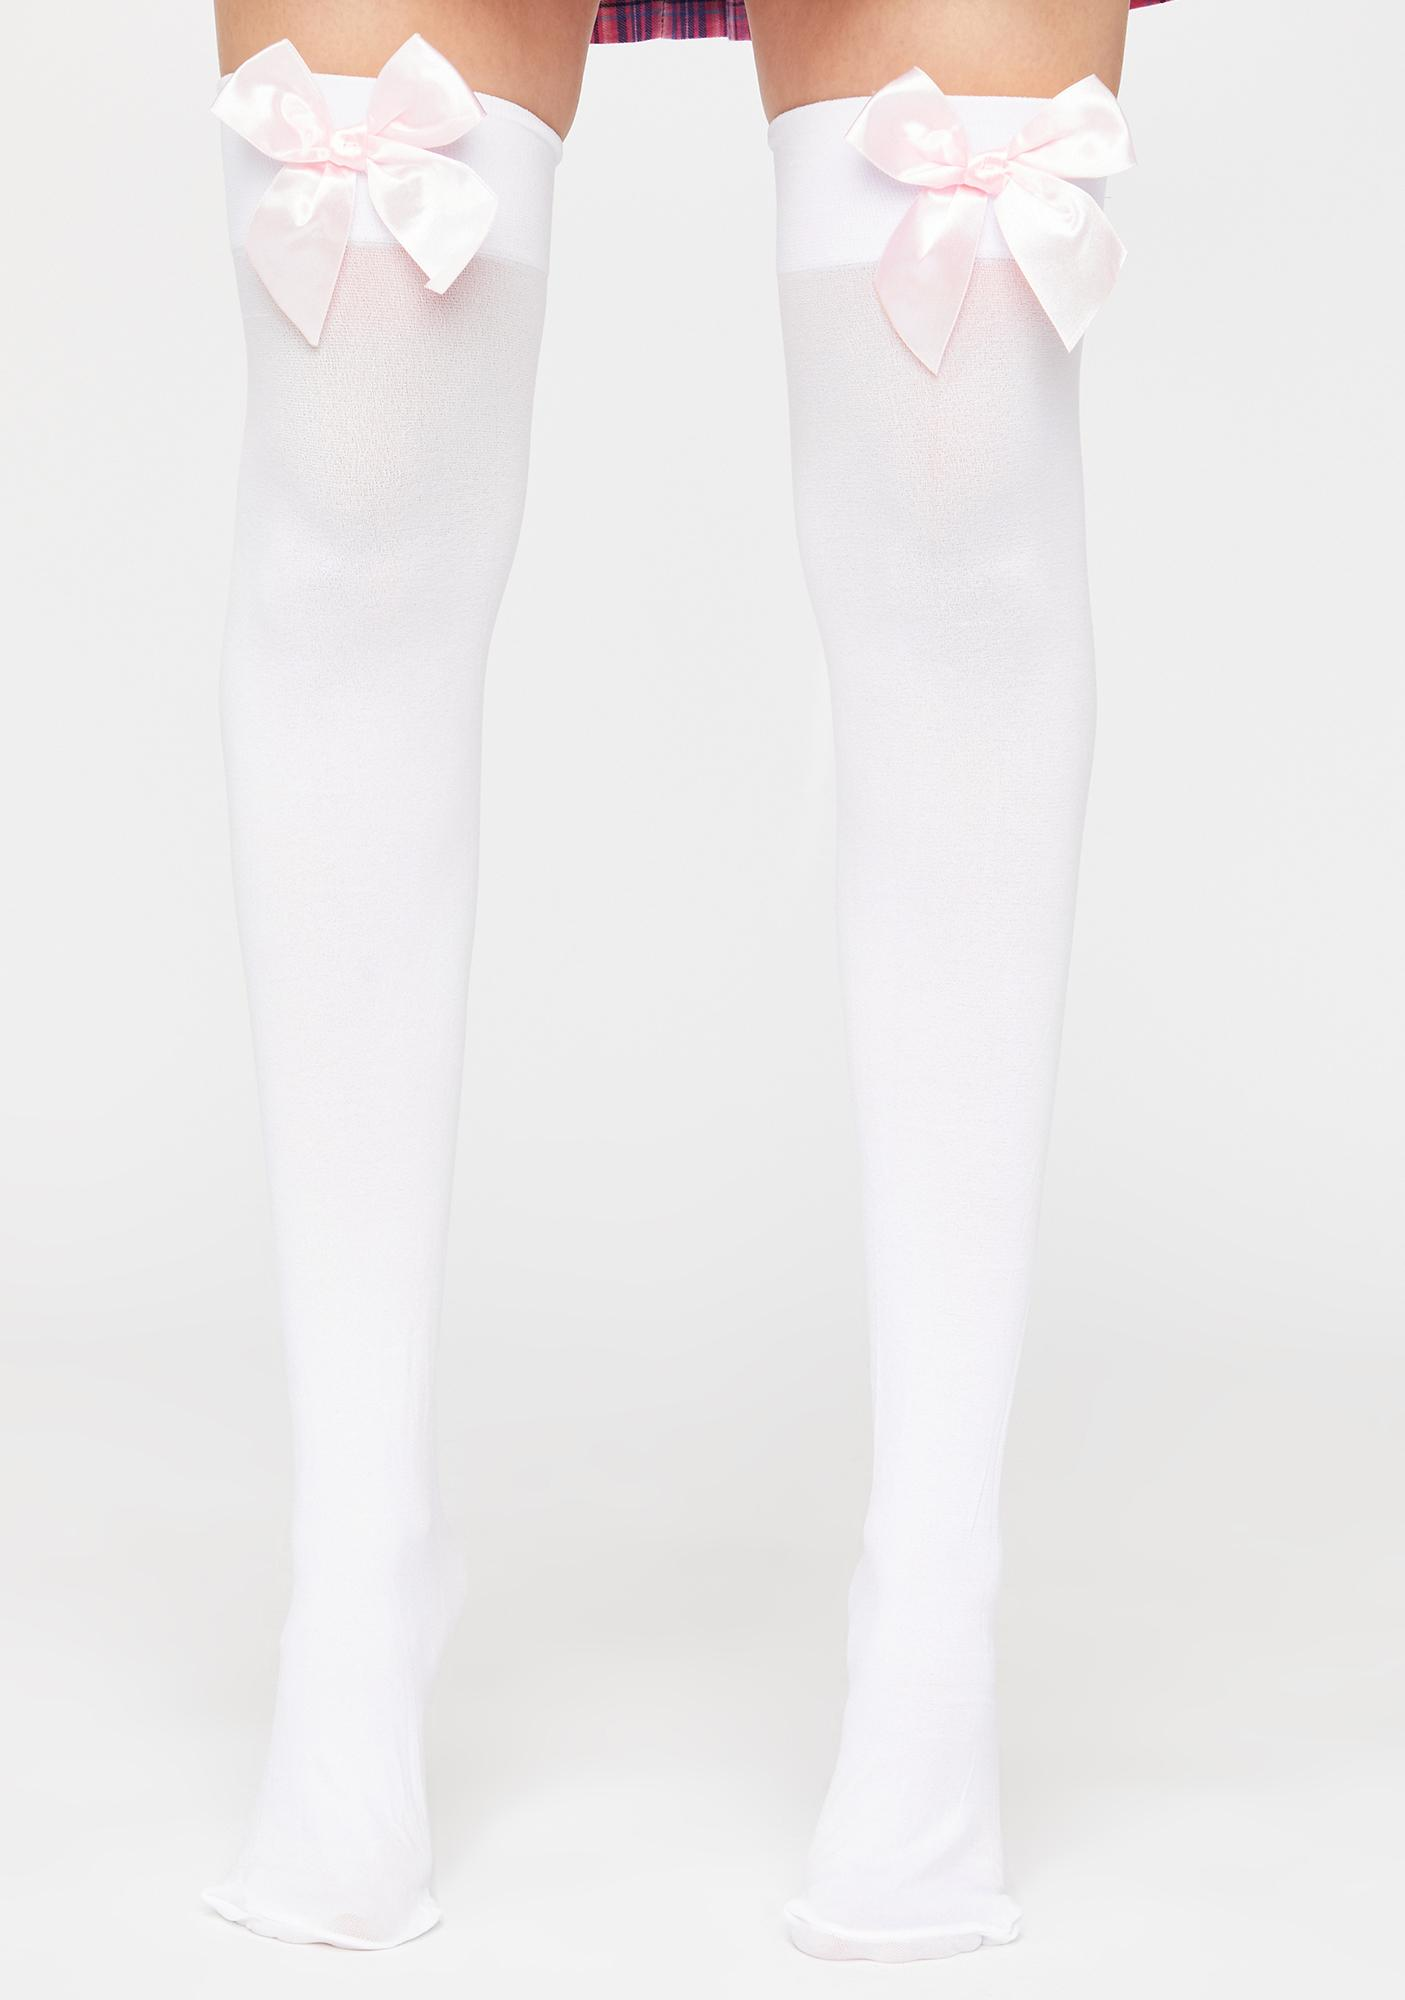 Baby I'm Over It Thigh Highs